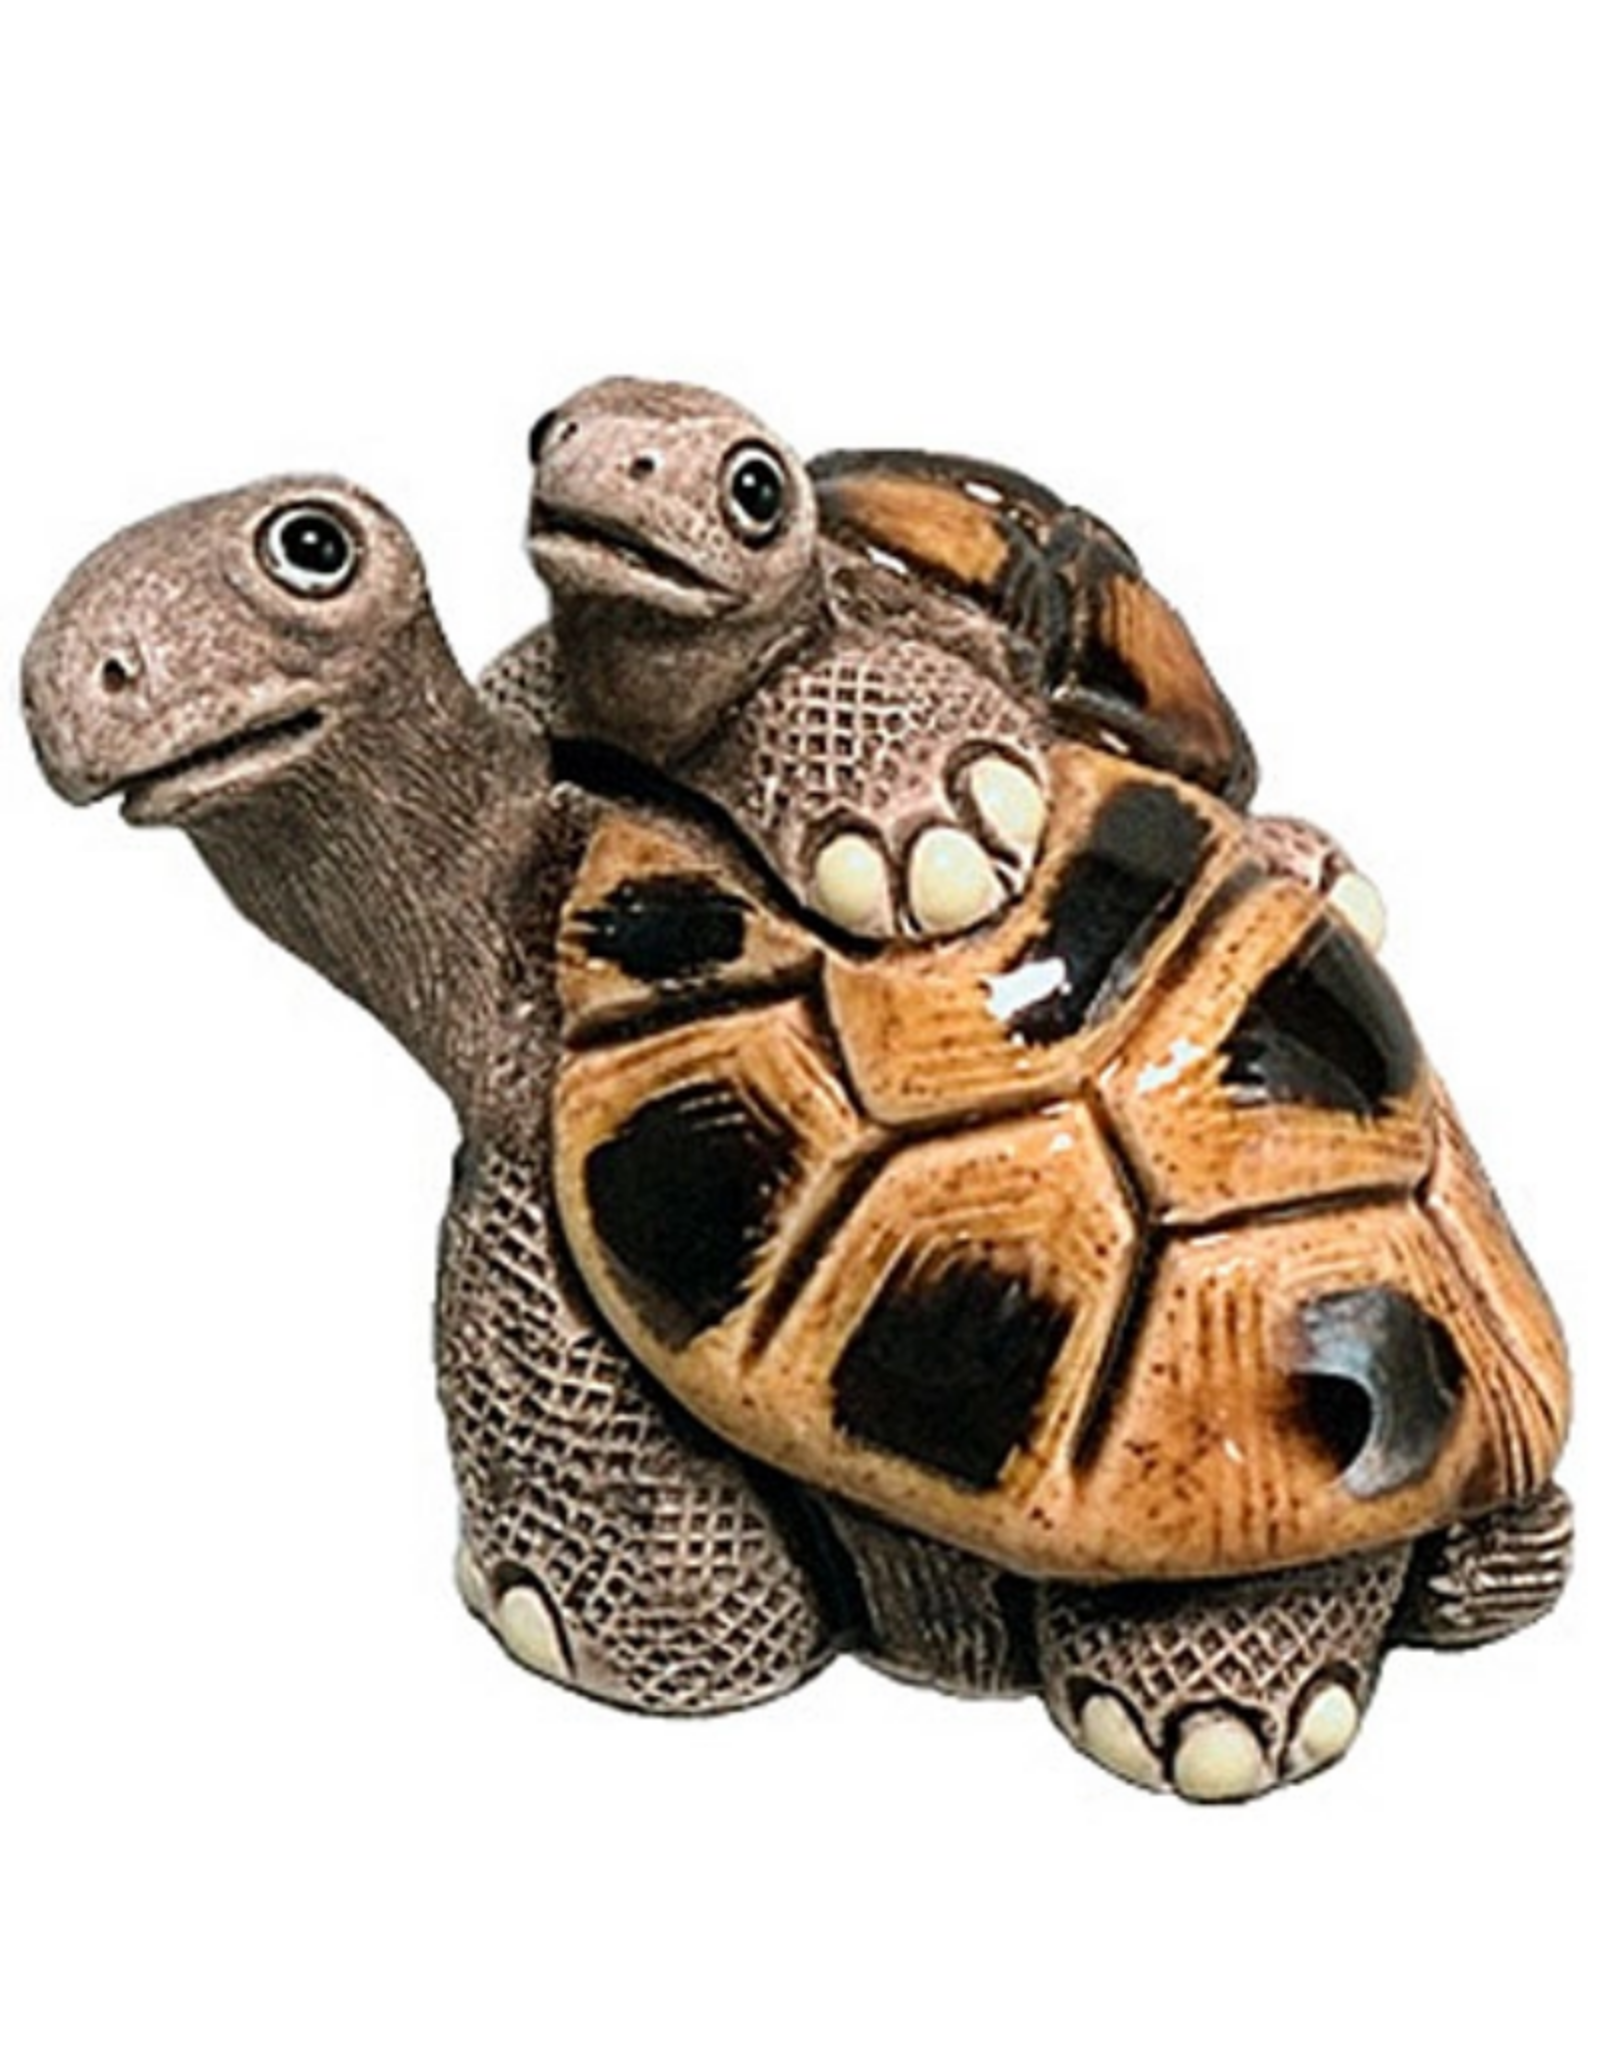 Ten Thousand Villages USA Turtle with Baby